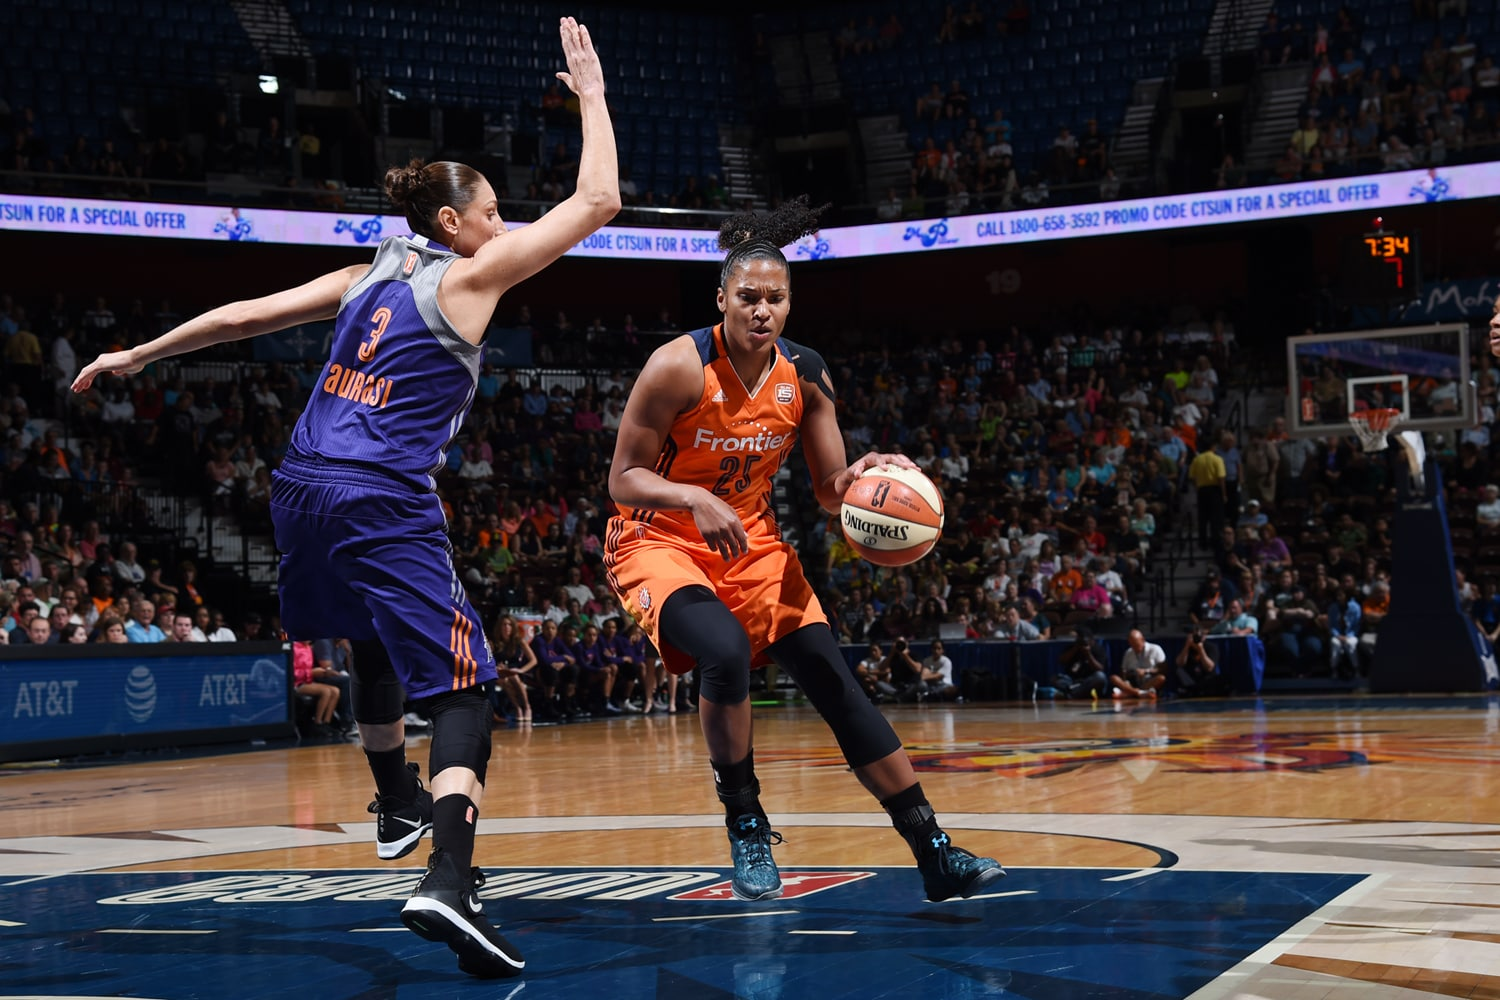 Diana Taurasi on the defensive end.